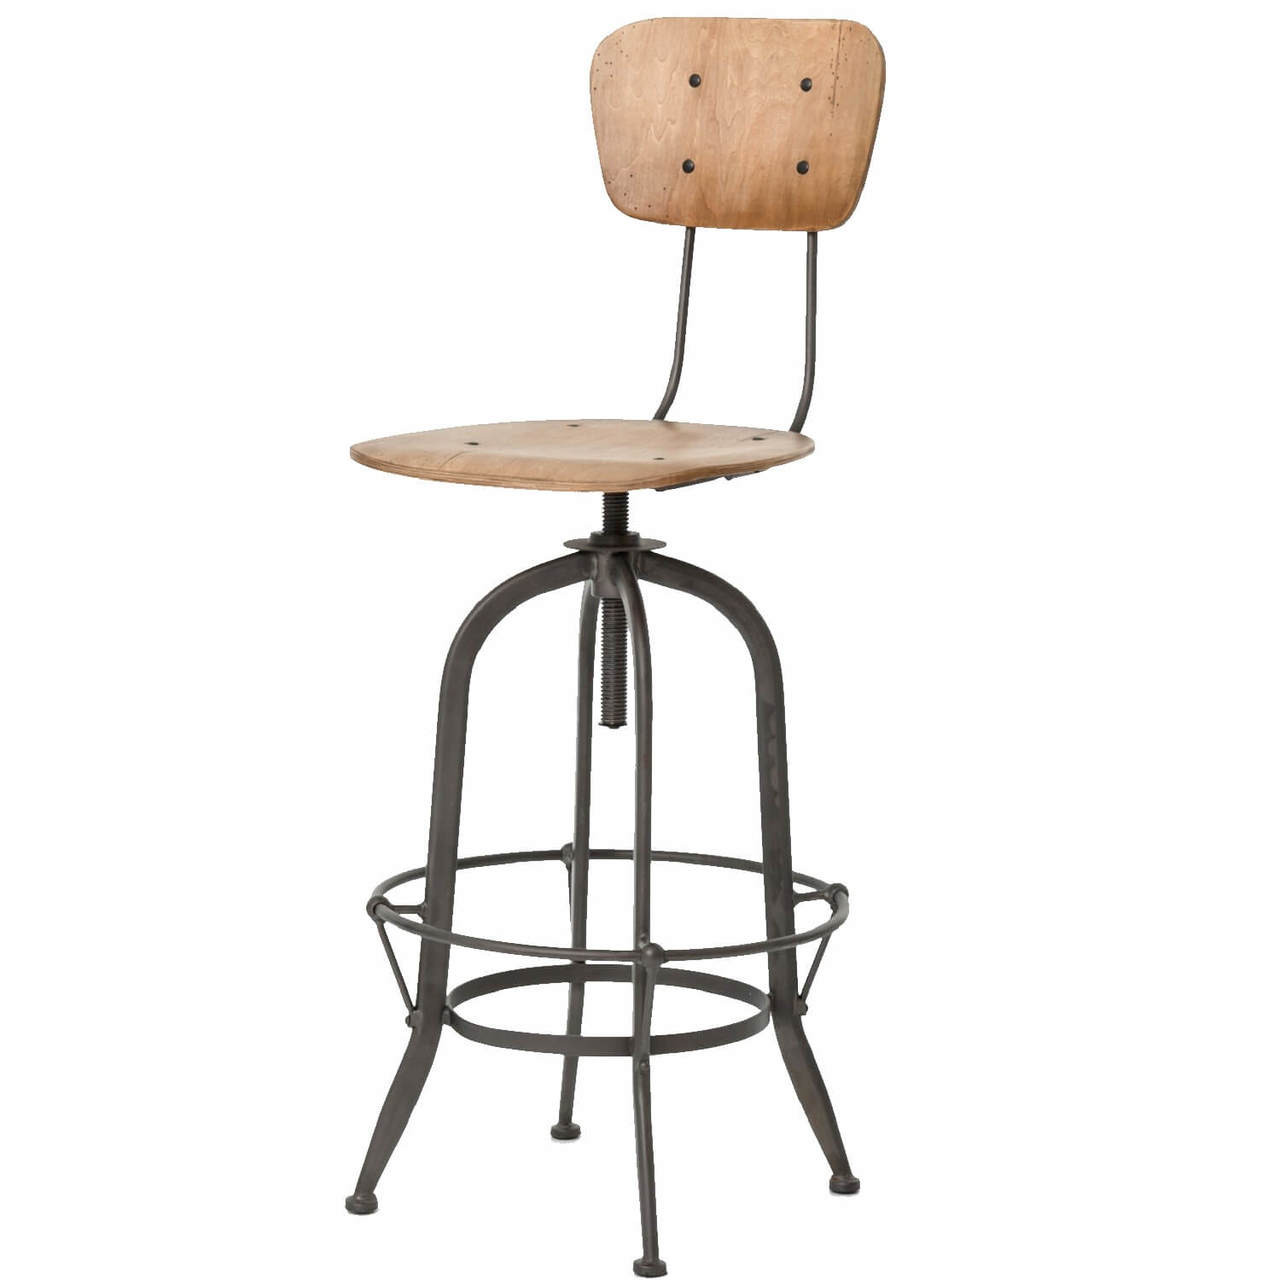 Groovy Jack Industrial Adjustable Bar Stool With Back Squirreltailoven Fun Painted Chair Ideas Images Squirreltailovenorg